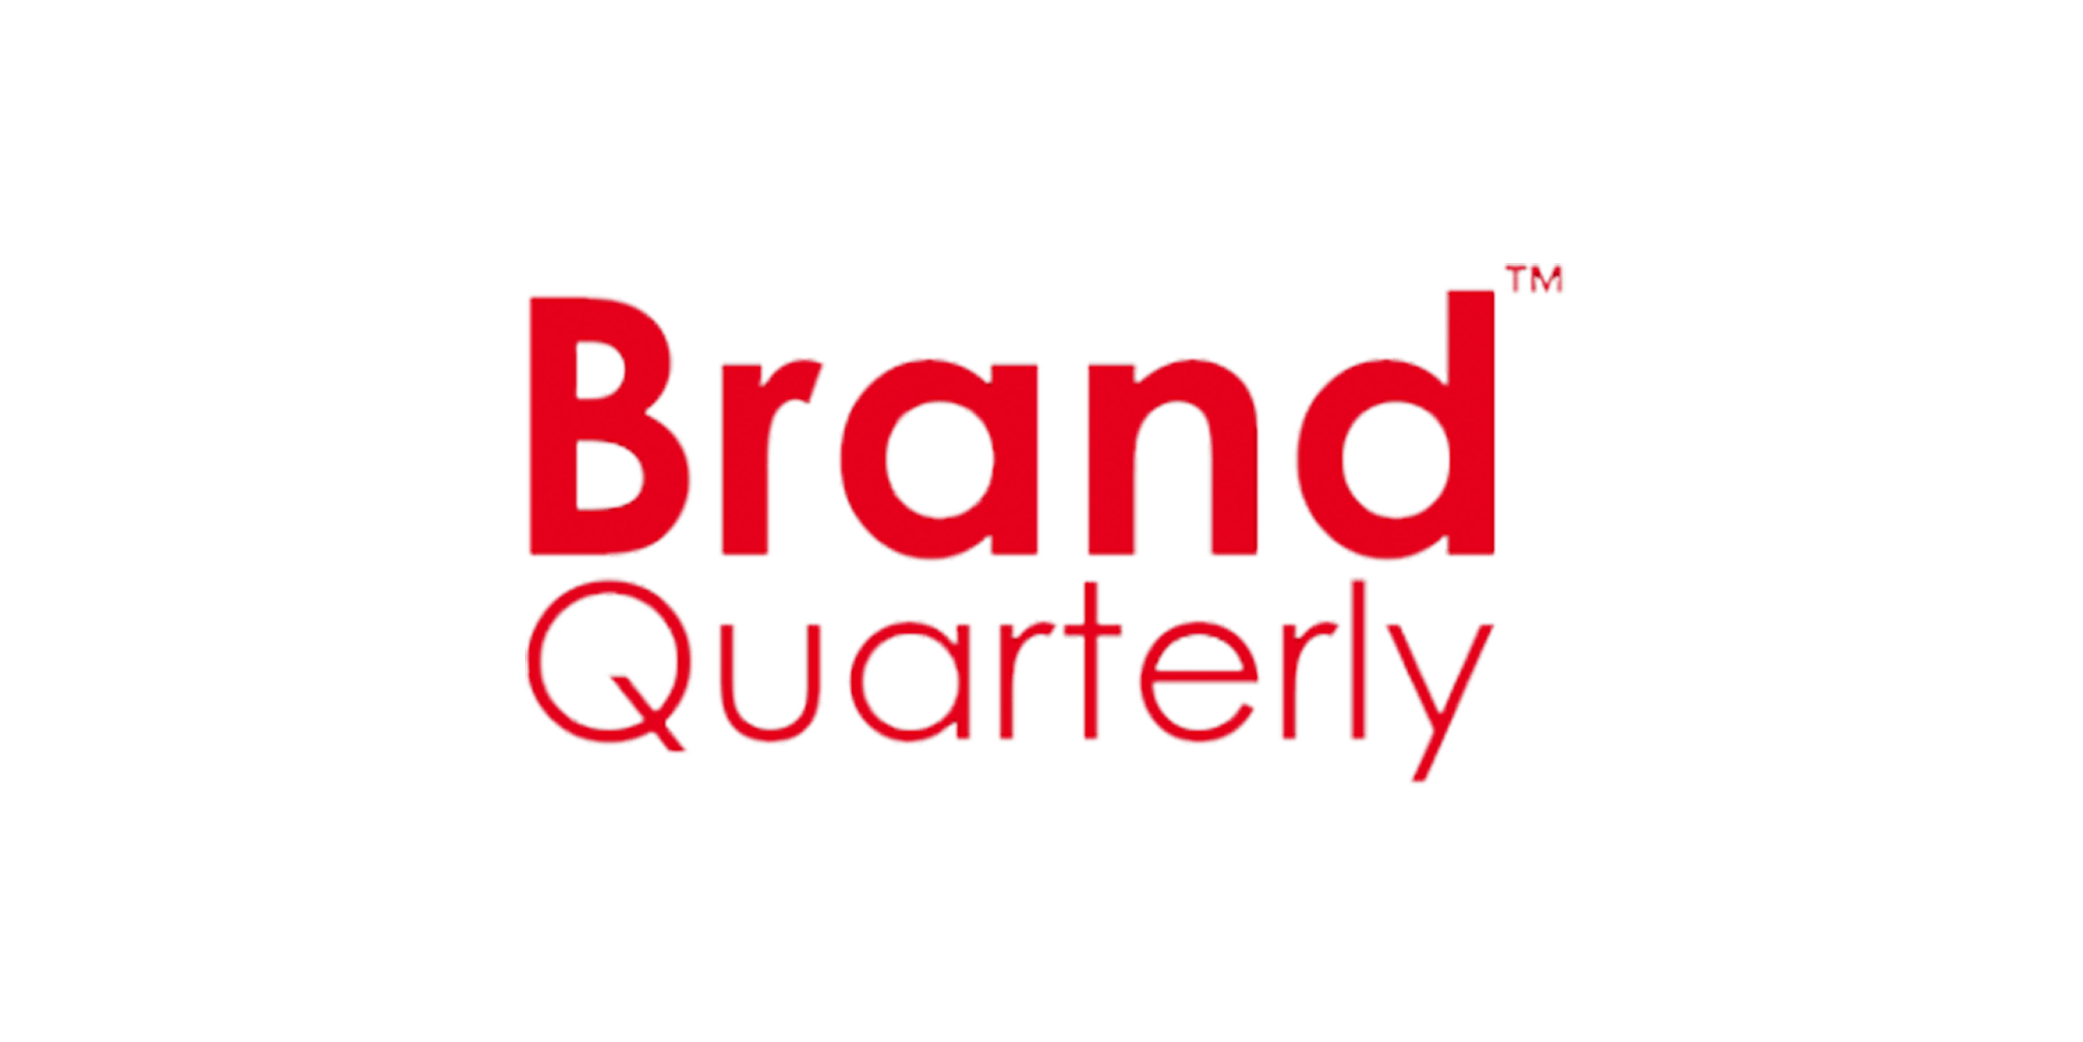 Advertising automation helps midsize marketers - Brand Quarterly